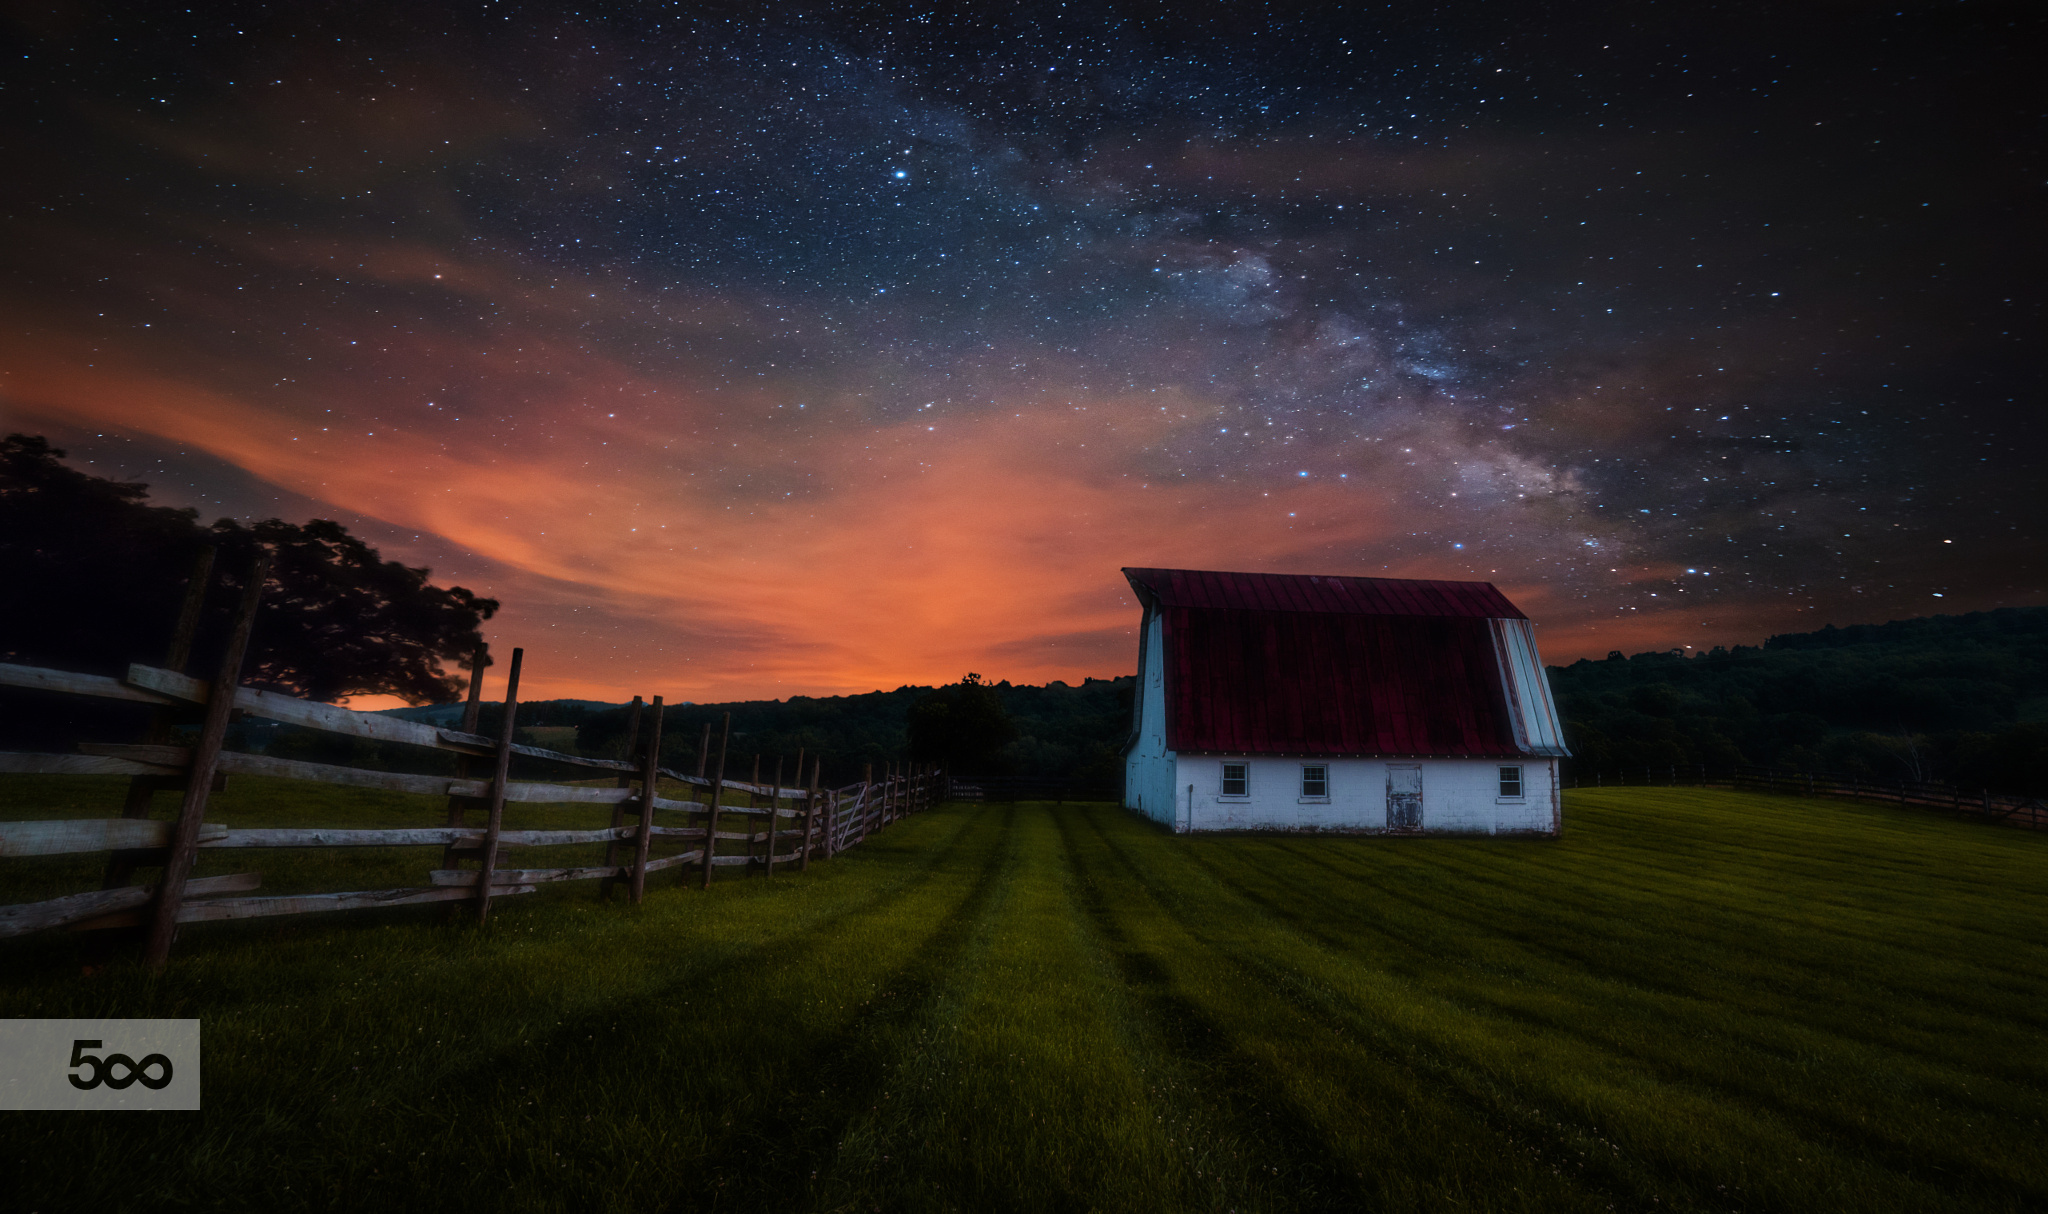 General 2048x1214 nature landscape starry night fence pasture